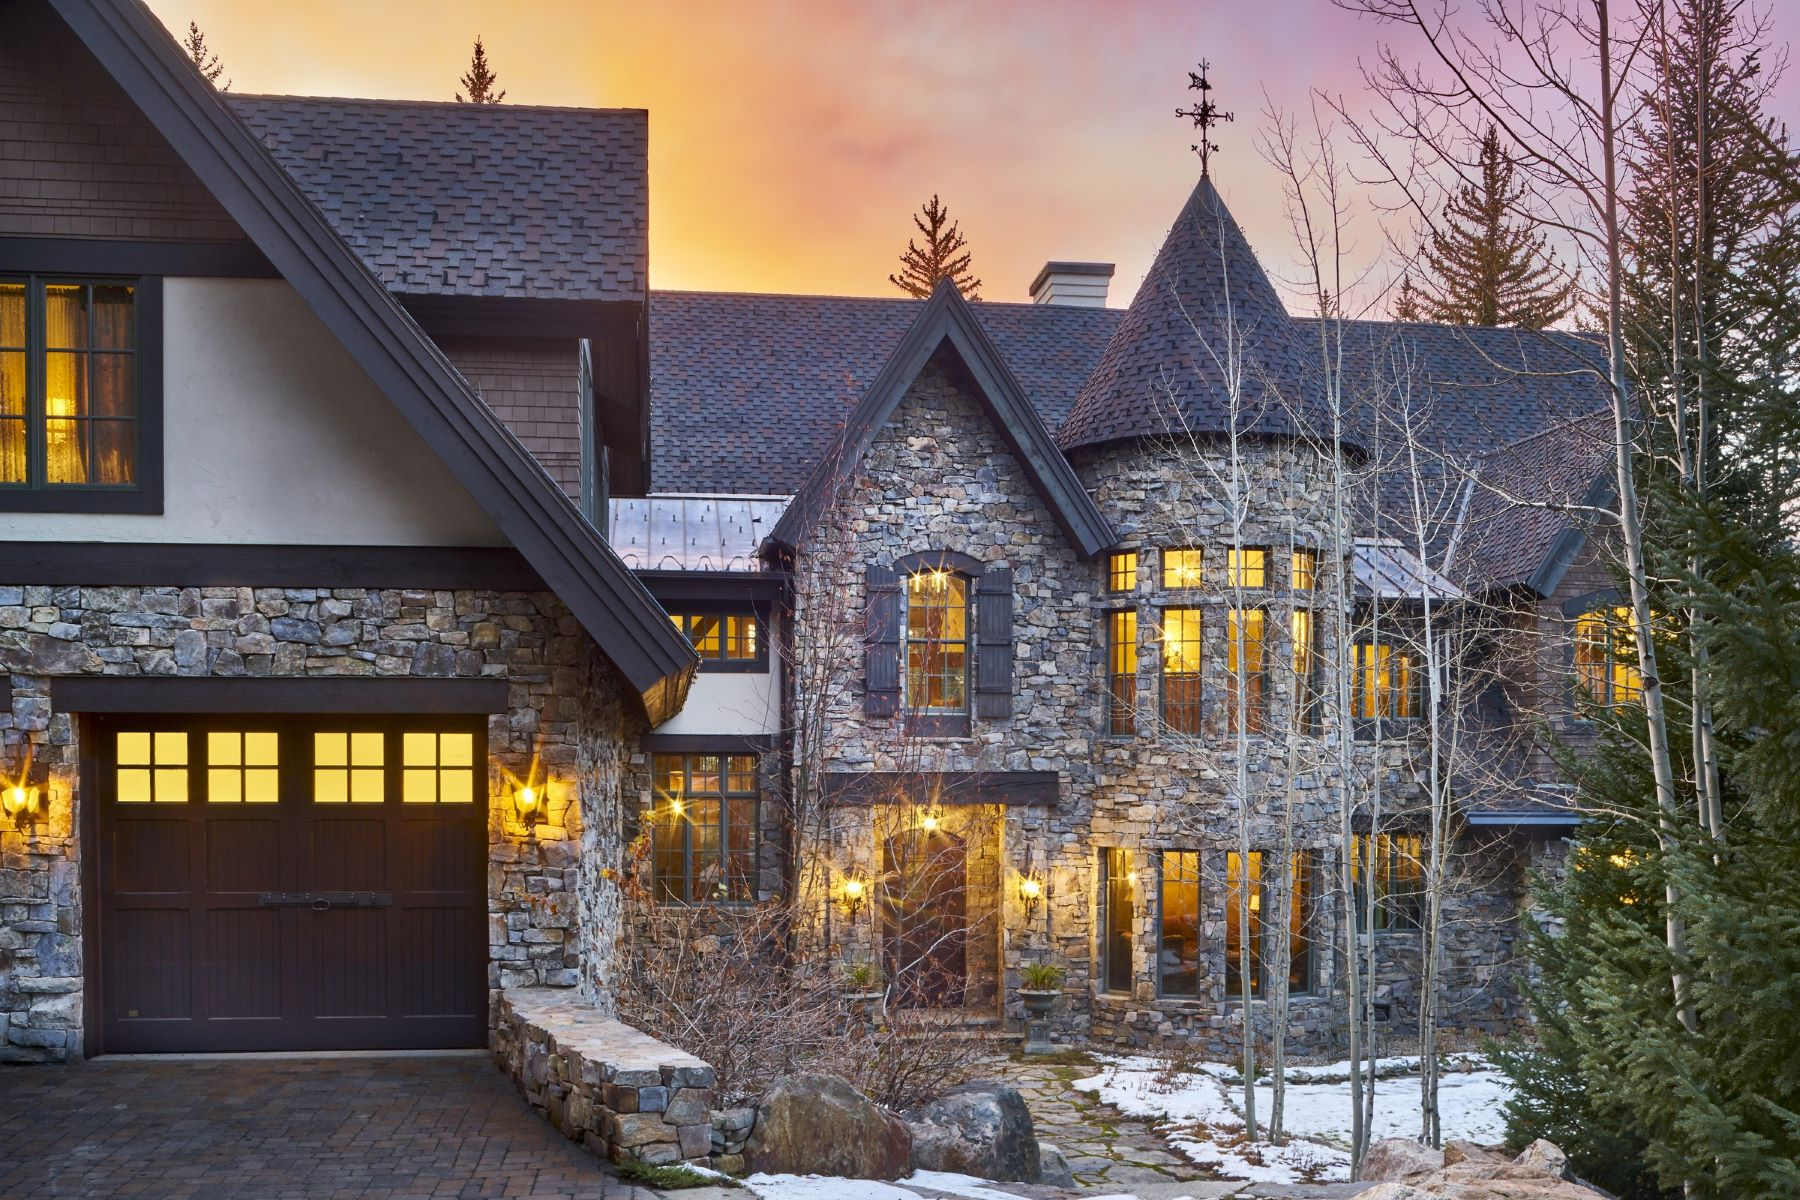 Single Family Home for Sale at Waterfront Castle in the Woods 1058 Graystone Court, Steamboat Springs, Colorado, 80487 United States